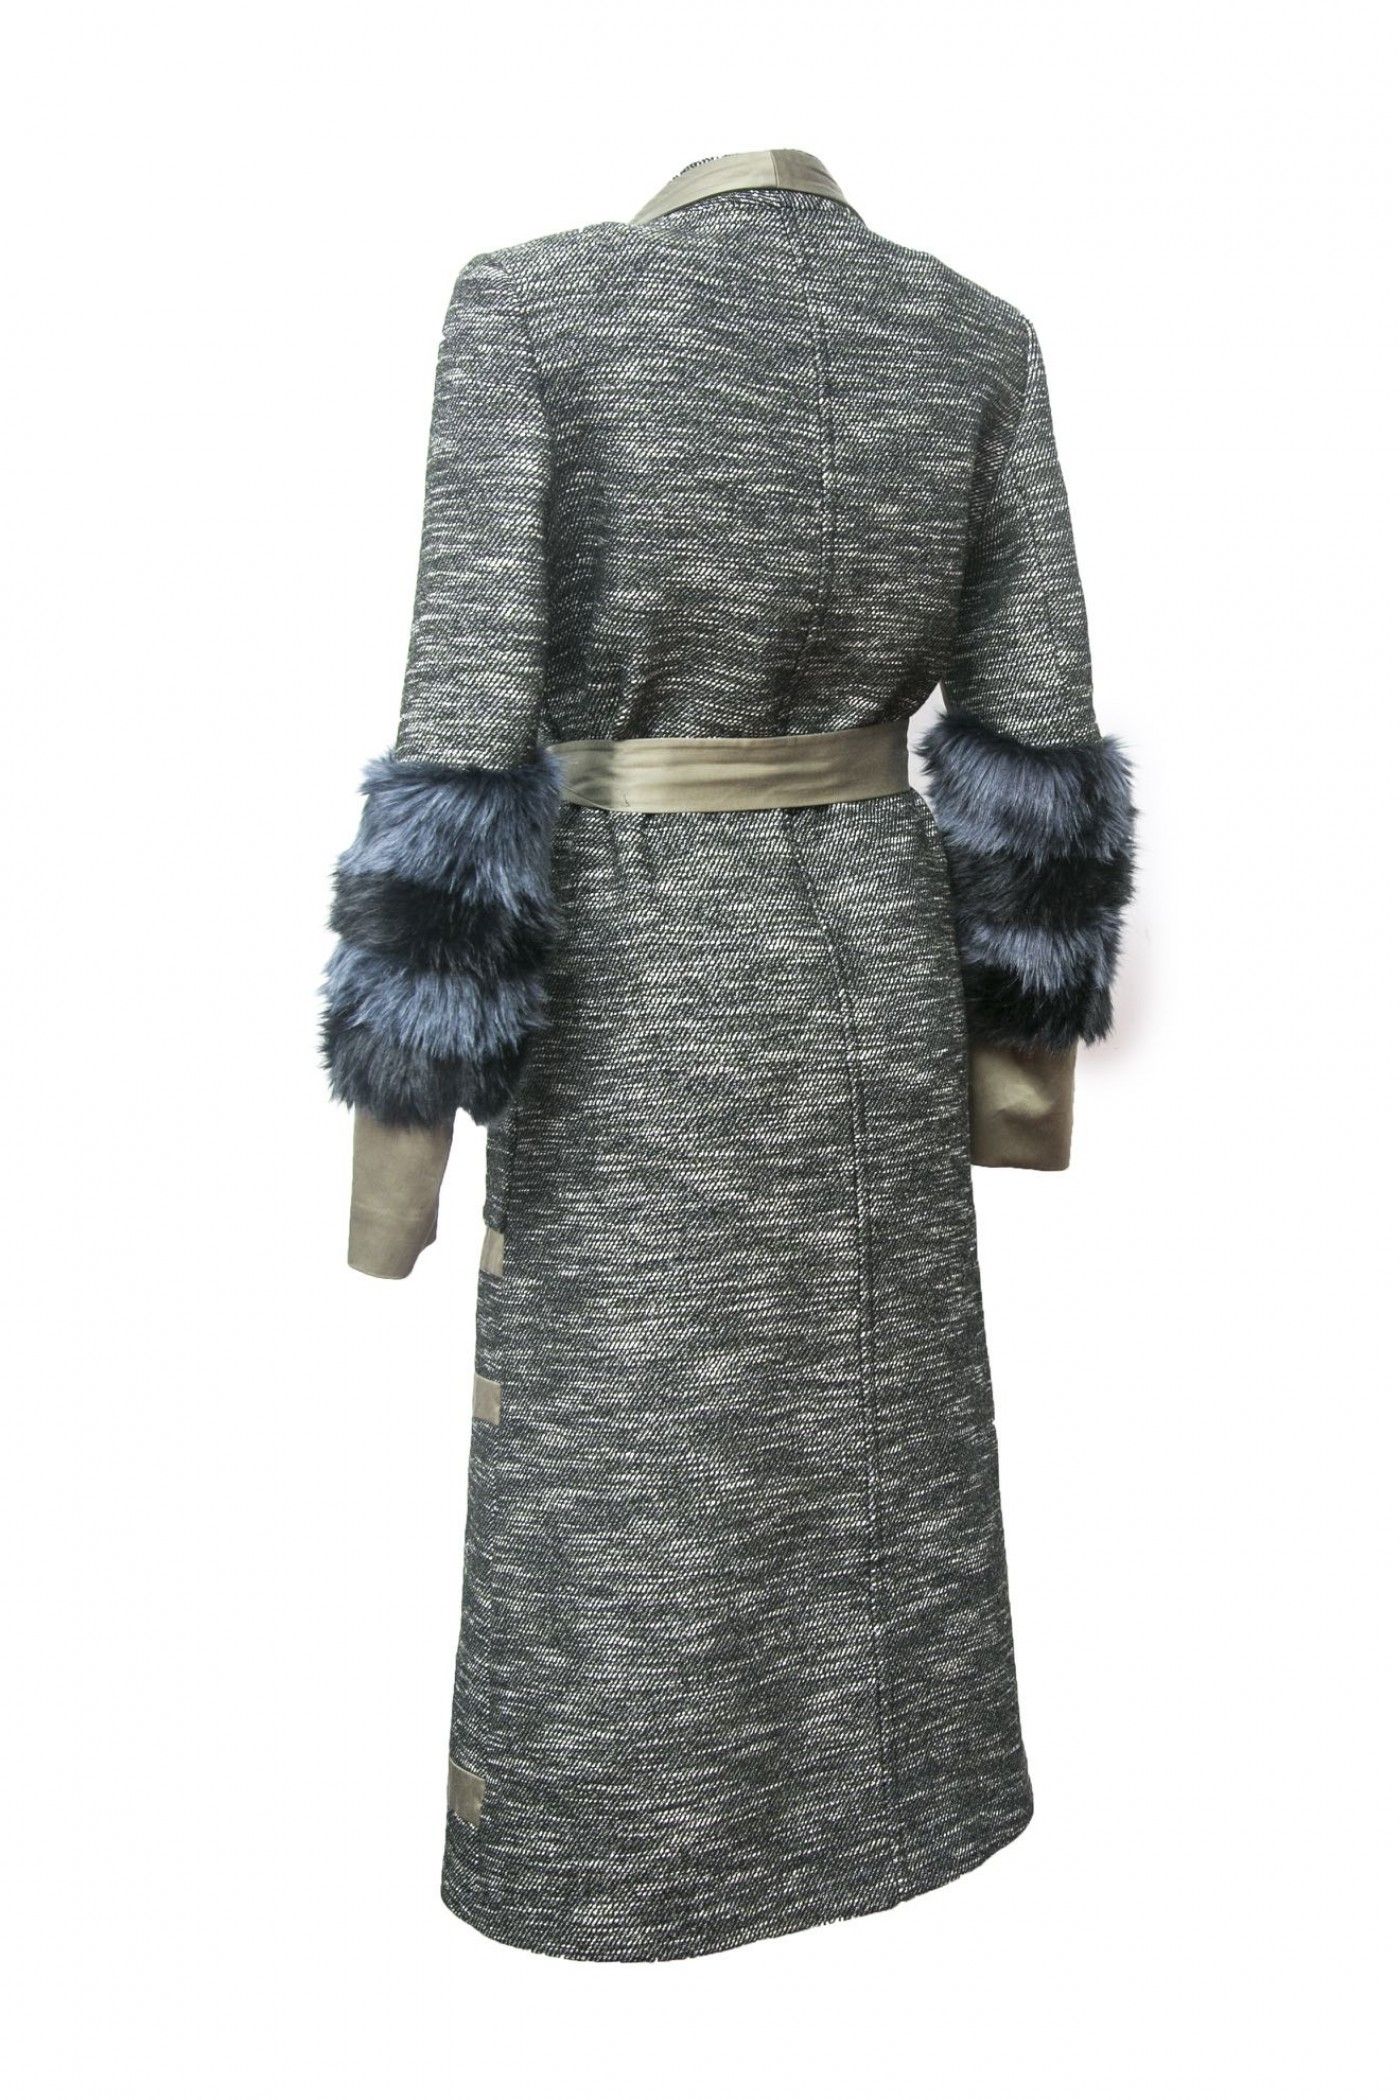 Textured Coat with Green Trim and Fur Sleeve